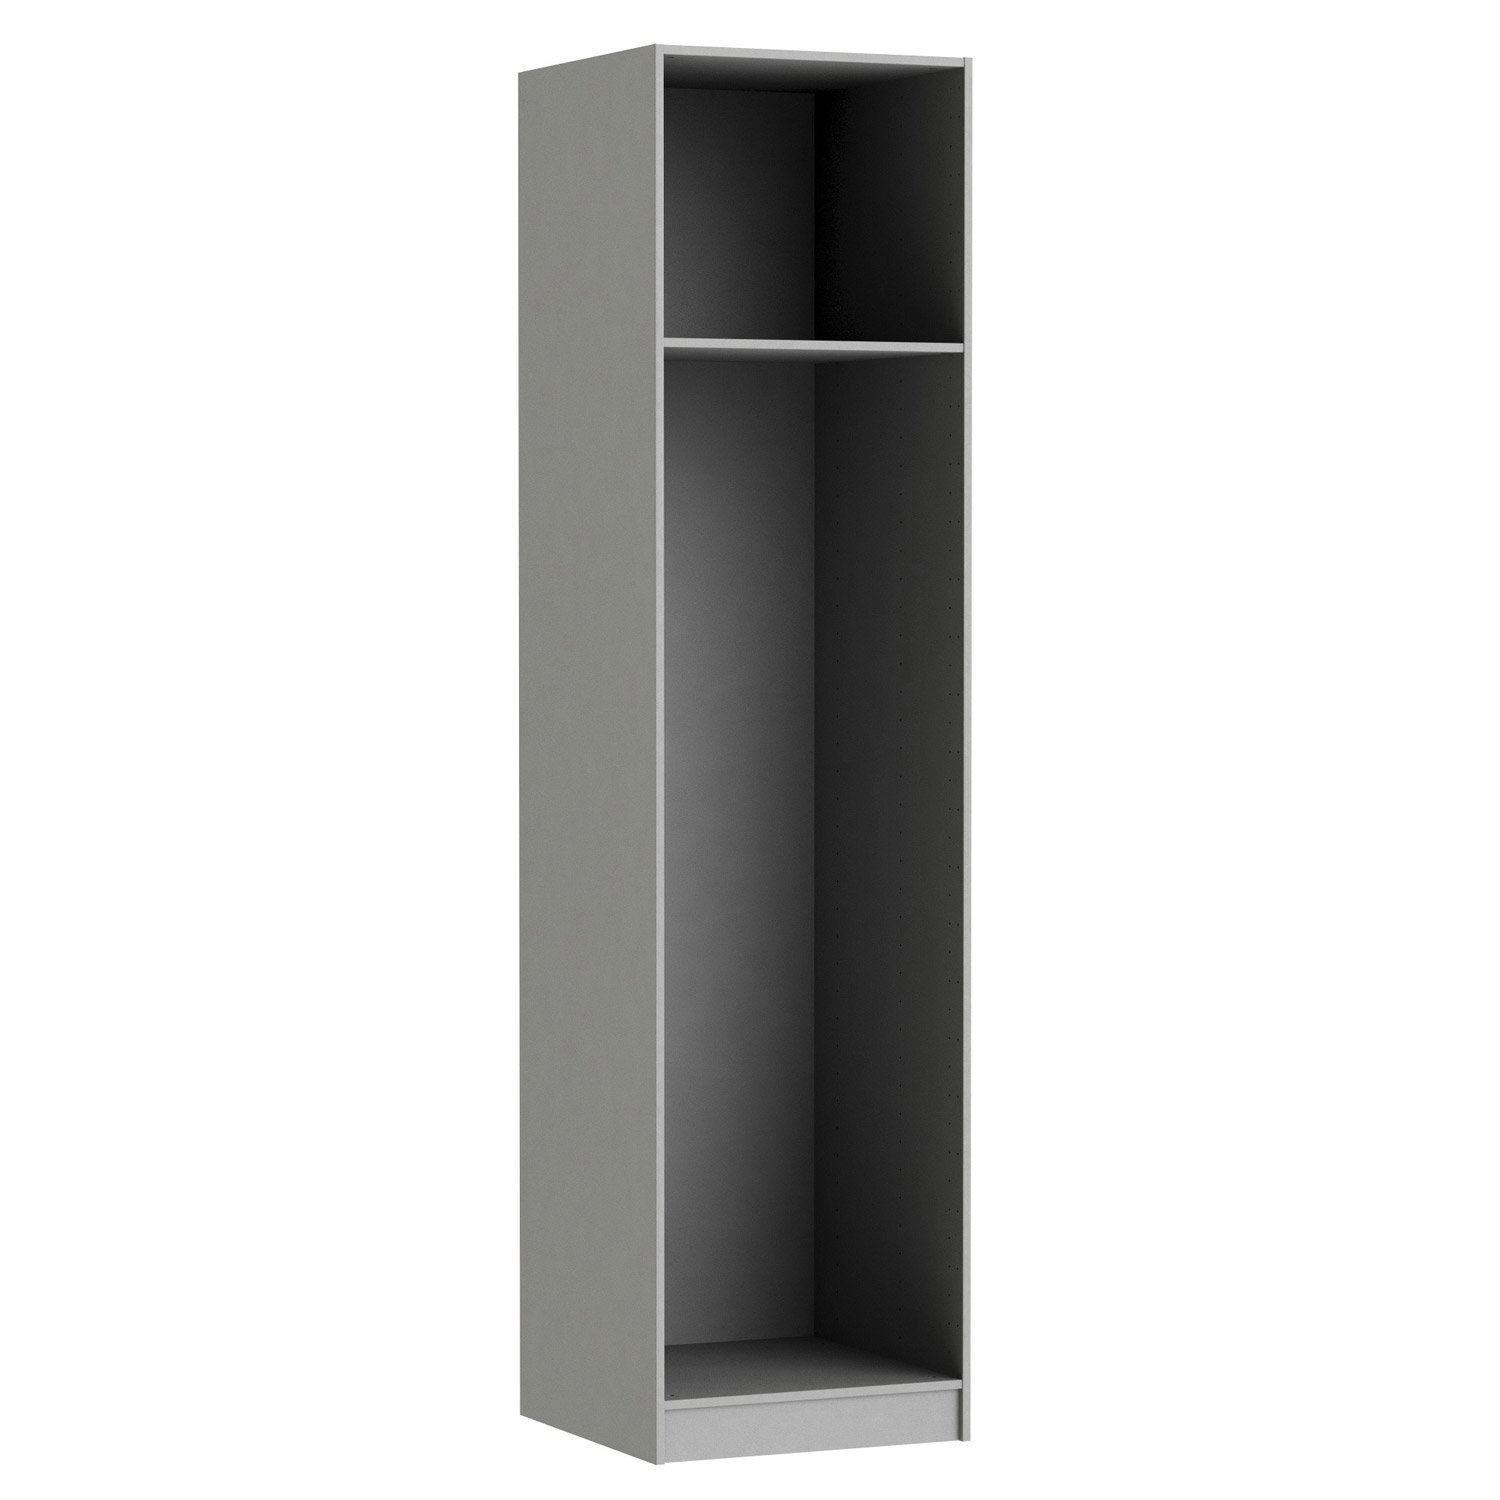 Caisson SPACEO Home 240 x 60 x 60 cm, anthracite | Leroy Merlin